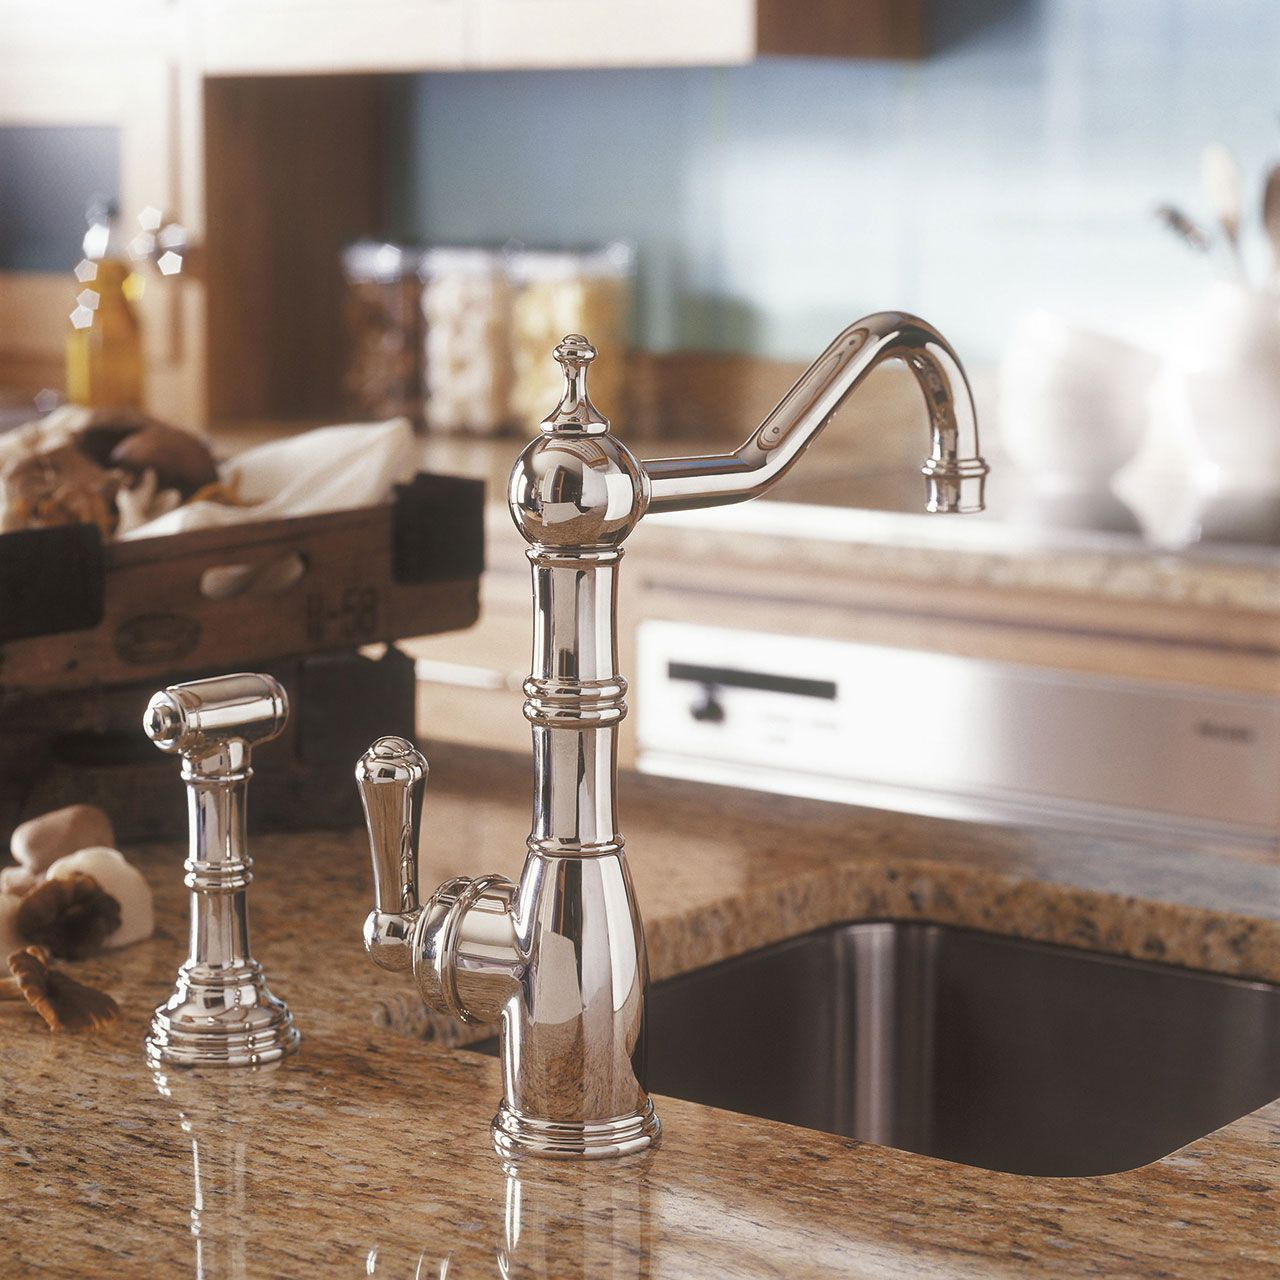 Perrin and Rowe 4746 AQUITAINE Kitchen Tap with Rinse | Sink taps ...